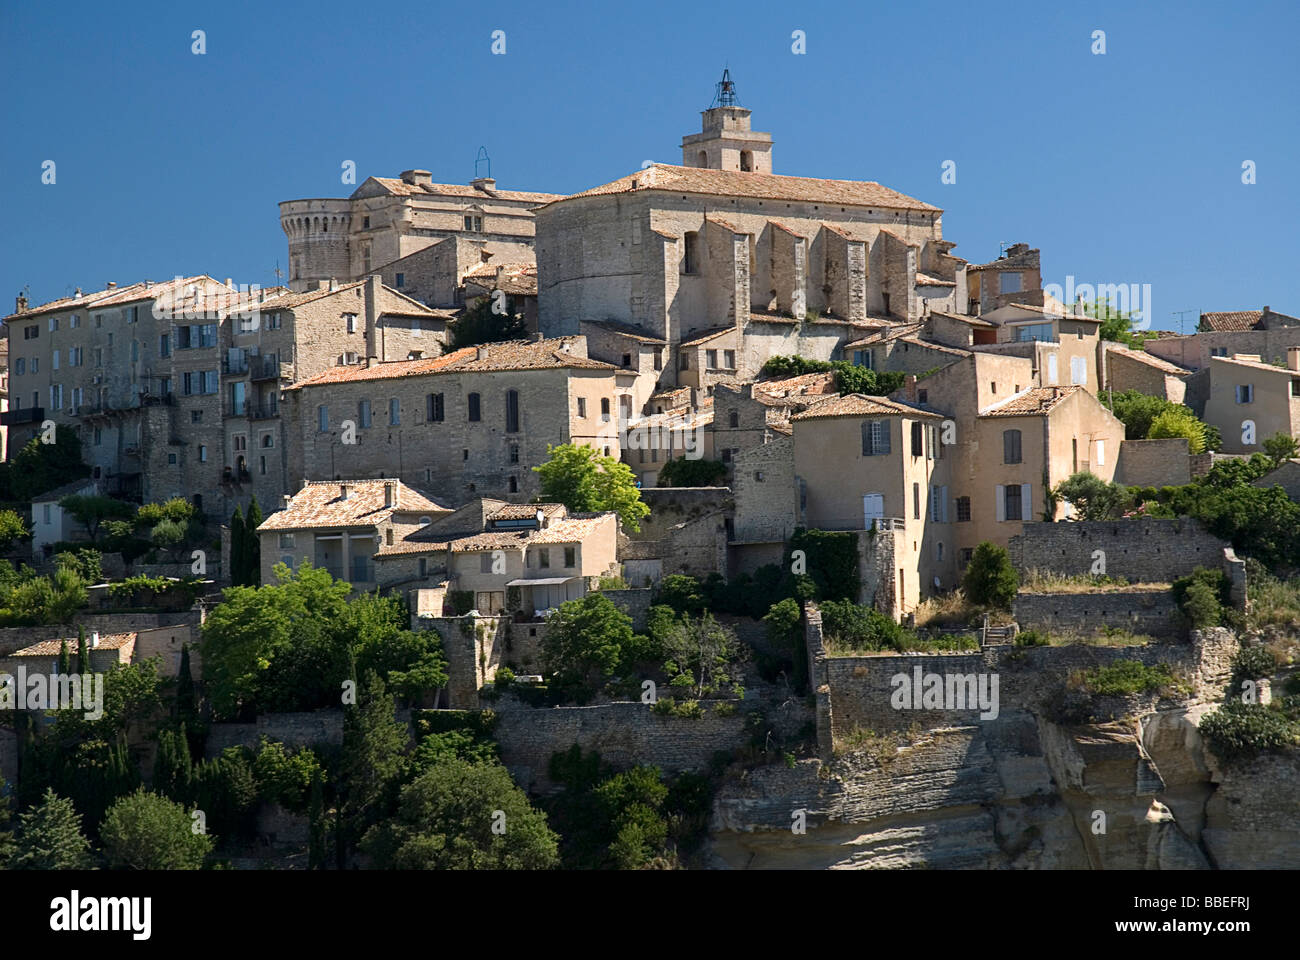 FRANCE Provence Cote d'Azur Vaucluse Gordes Provencal Hilltop village with sixteenth century chateau and church. Stock Photo